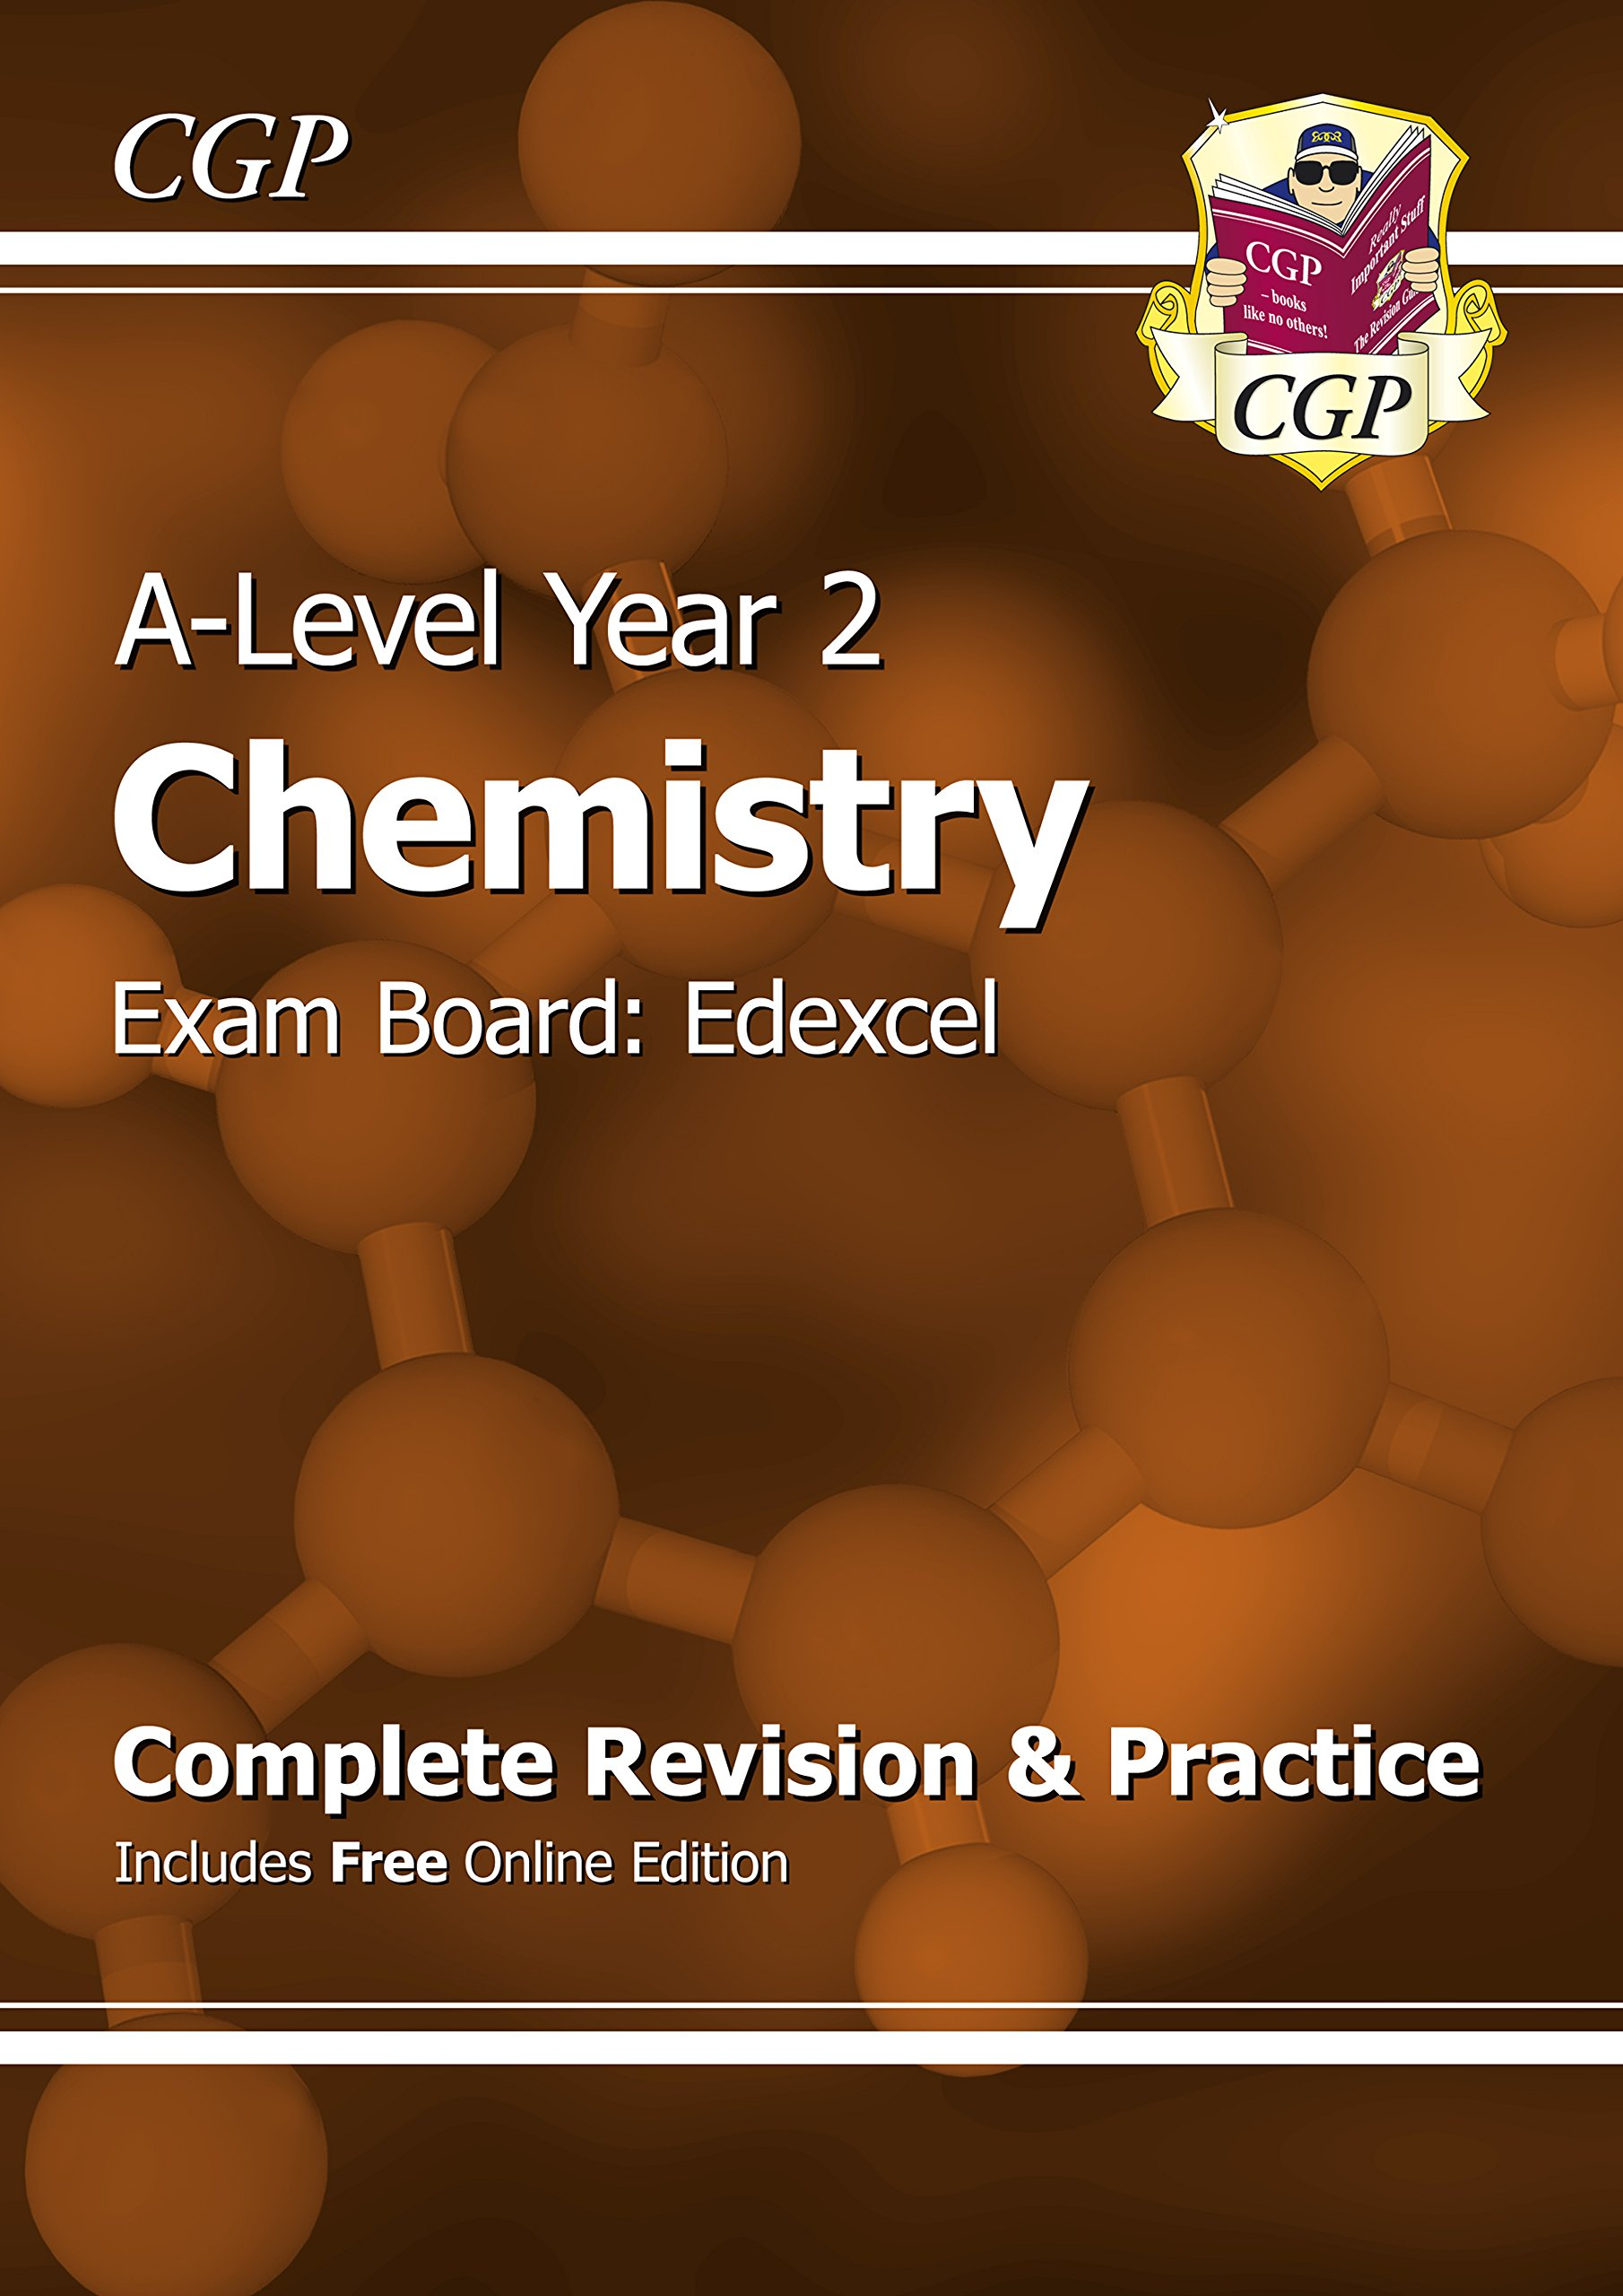 A-Level Chemistry: Edexcel Year 2 Complete Revision & Practice with Online  Edition (CGP A-Level Chemistry): Amazon.co.uk: CGP Books: 9781782943426:  Books